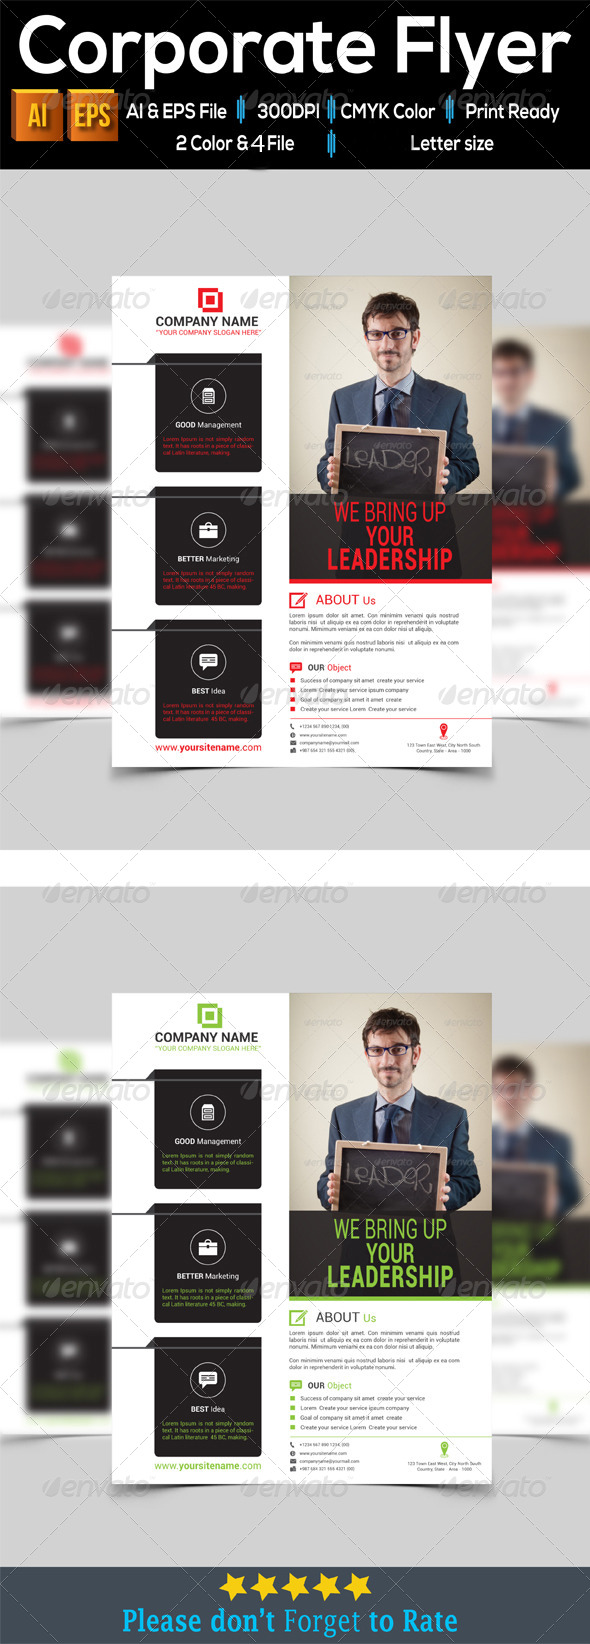 GraphicRiver Corporate Flyer 7896421